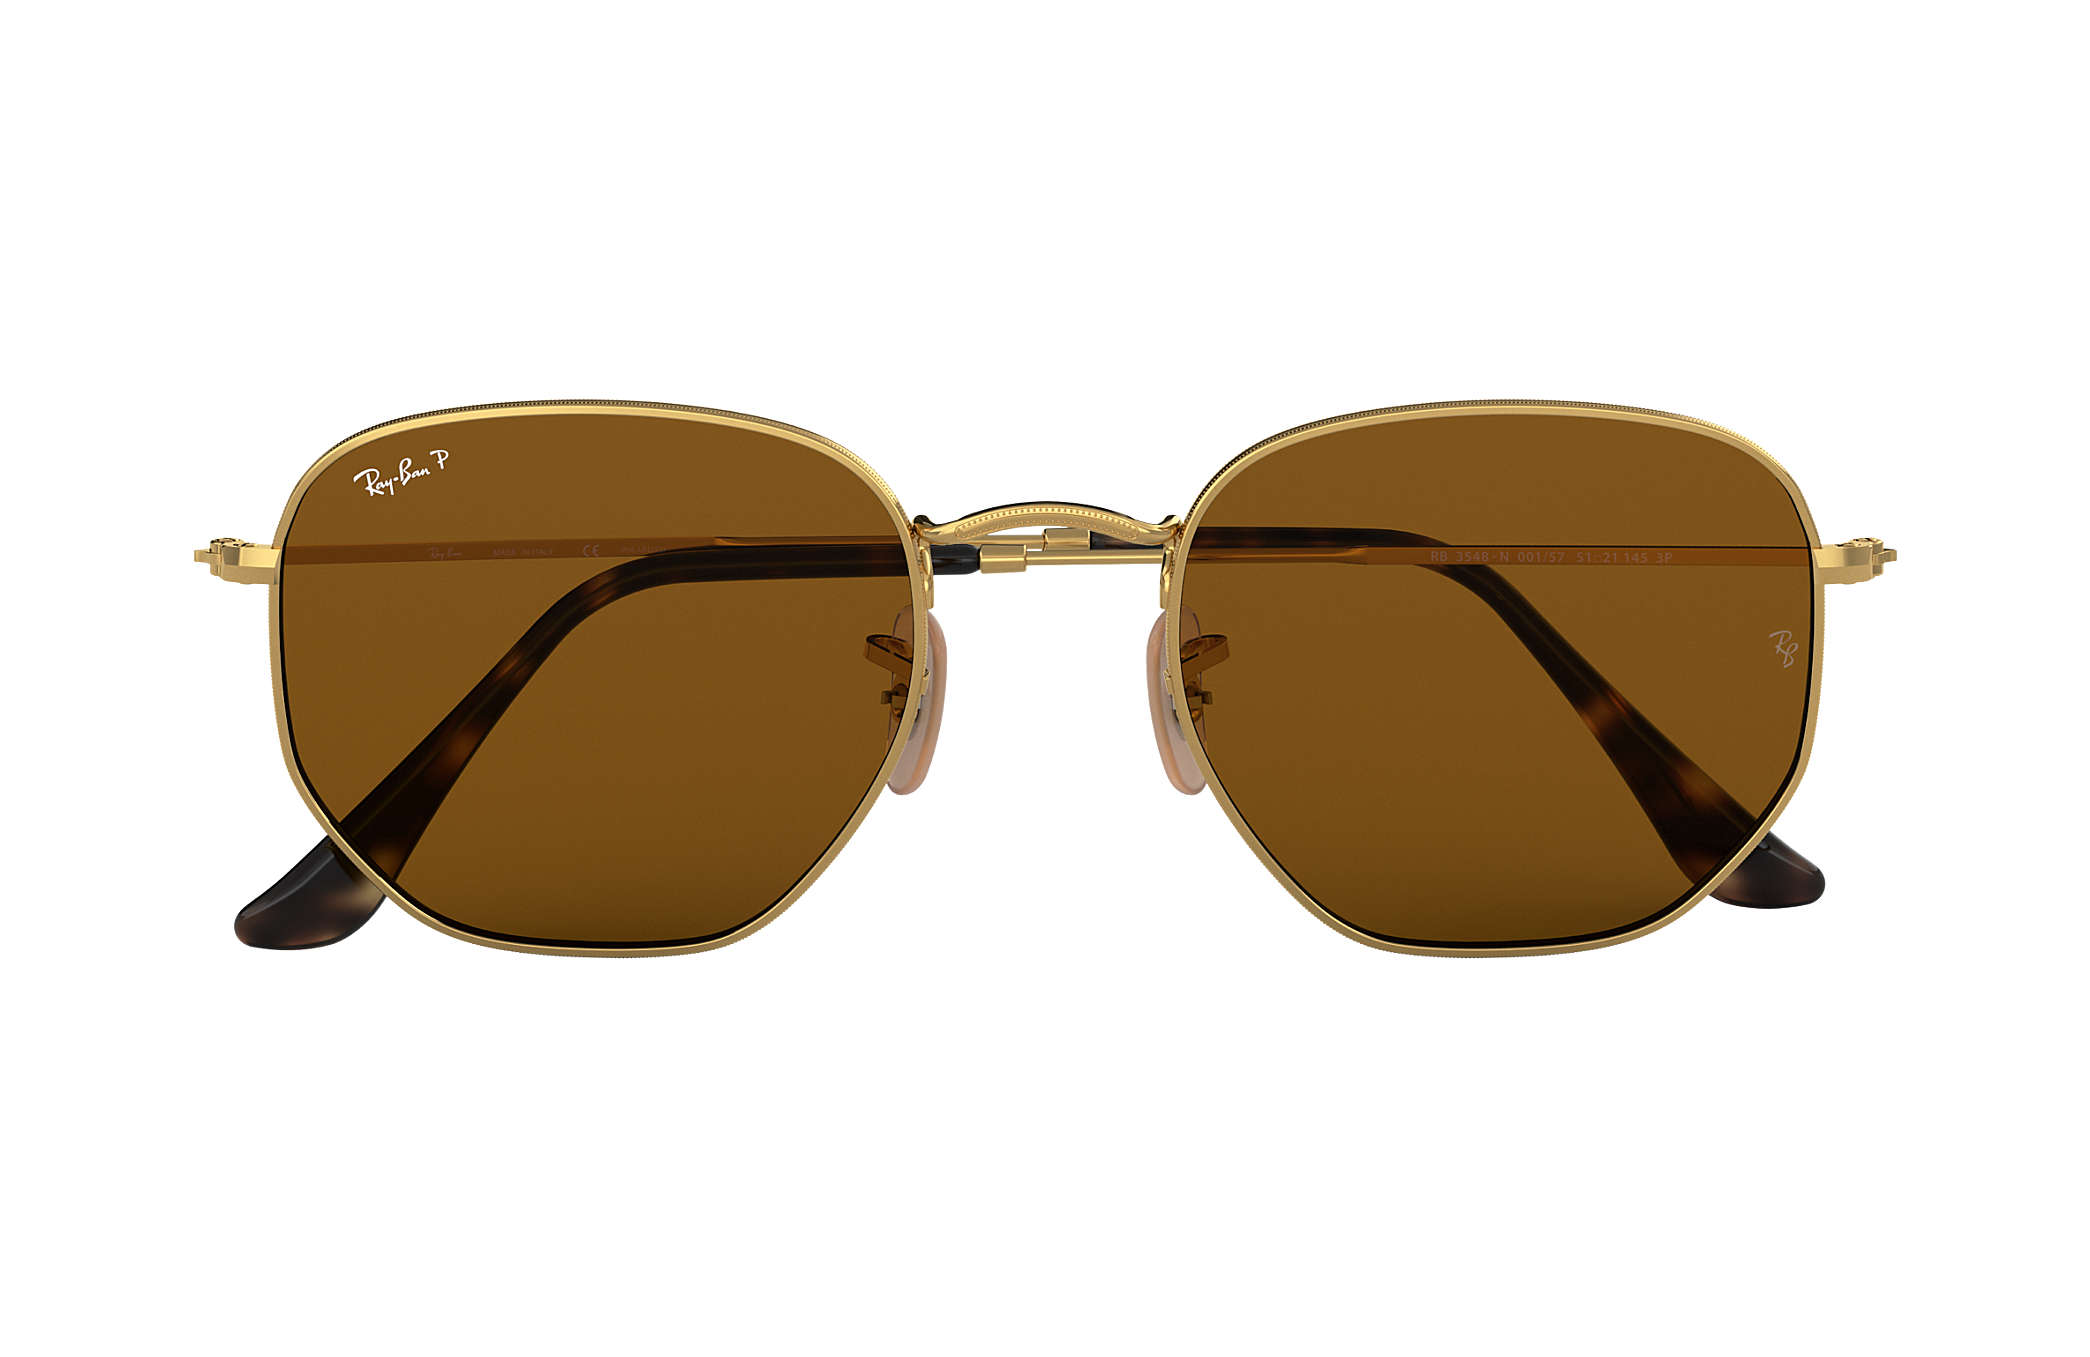 Ray-Ban Hexagonal Flat Lenses RB3548N Gold - Metal - Brown Polarized ... 43ad85f969